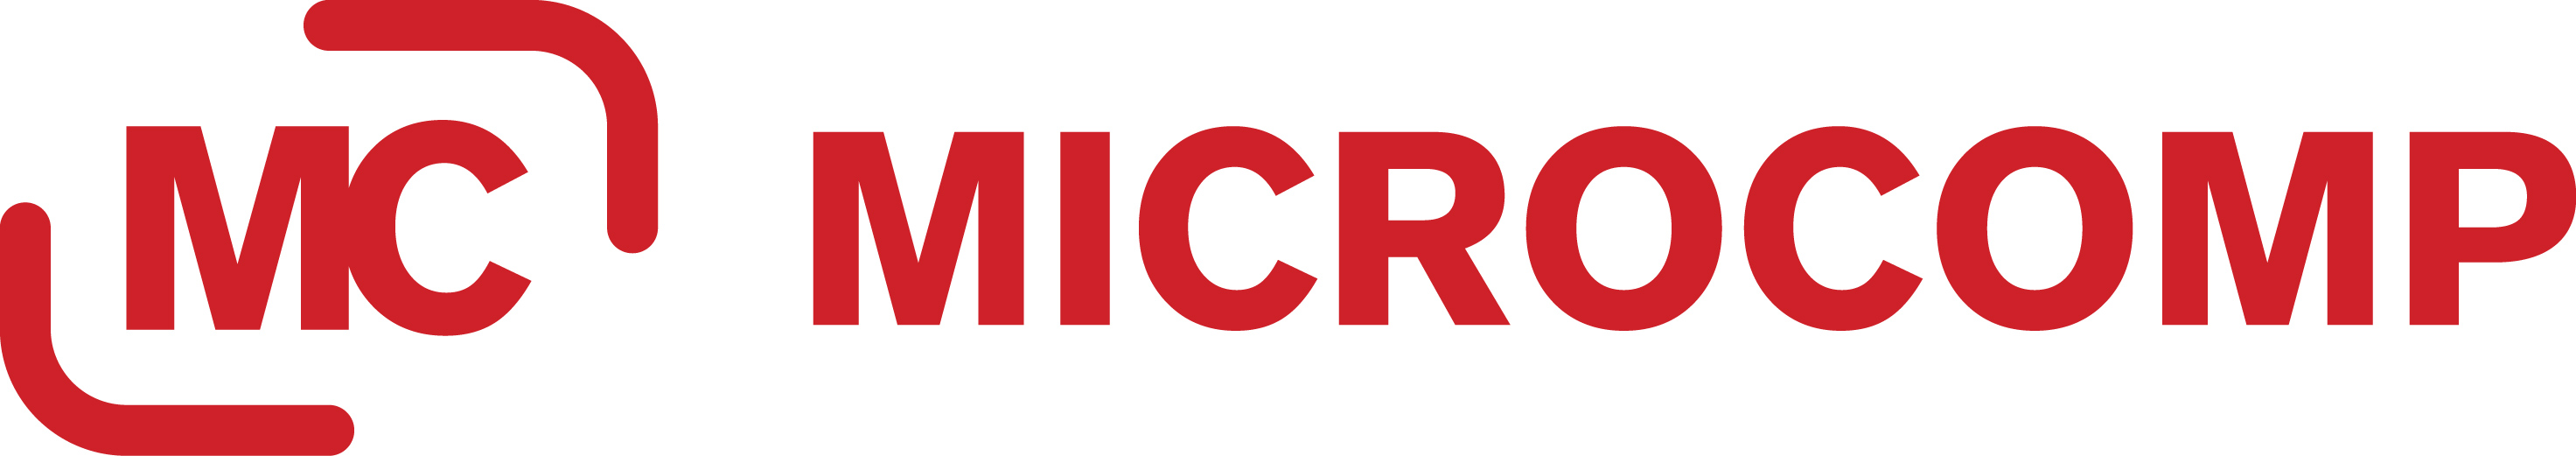 Logo Microcomp red